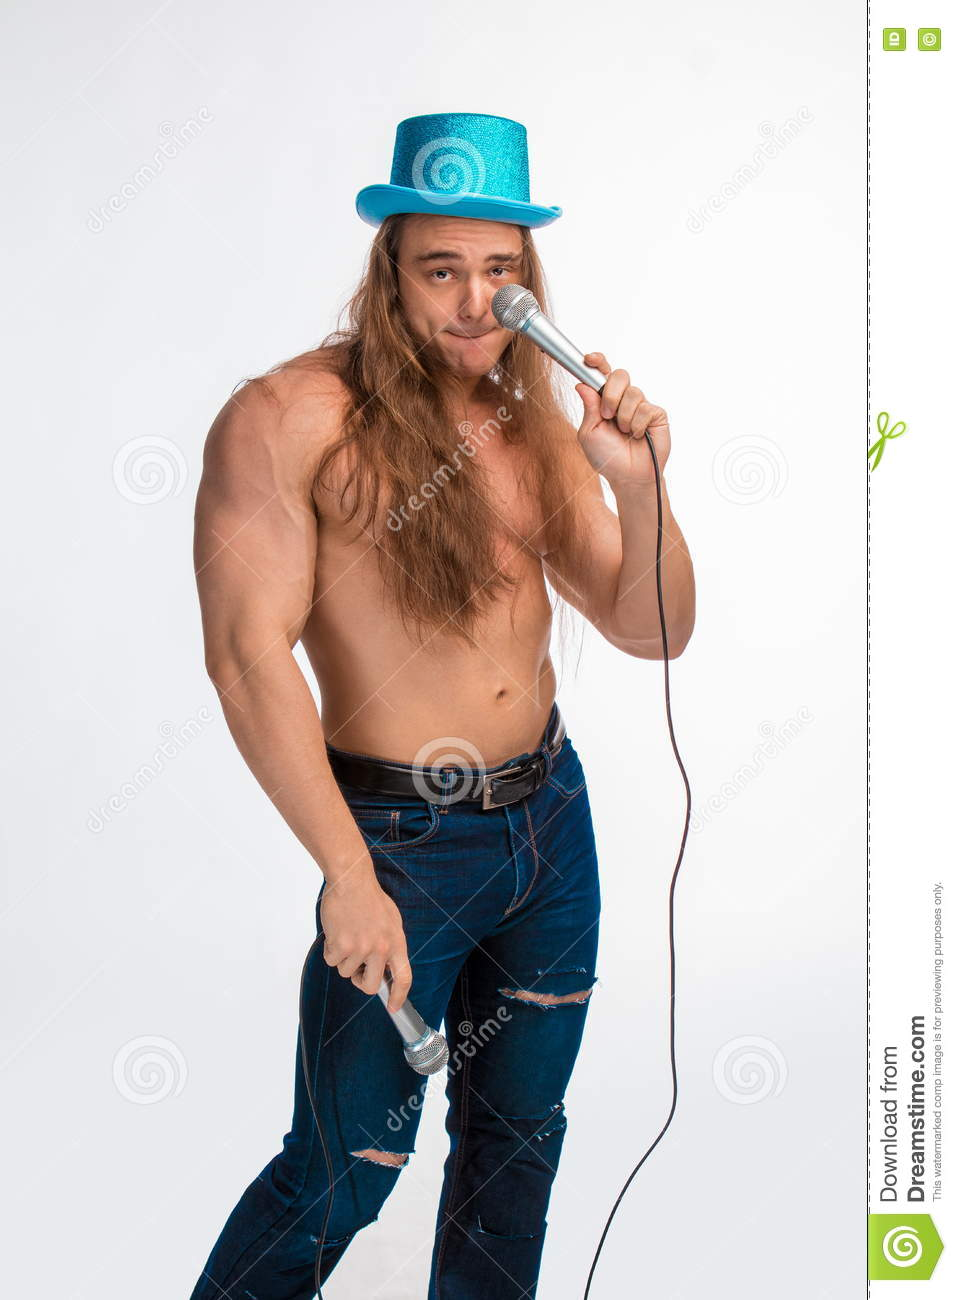 Singer bodybuilder shirtless with long hair in a blue hat with a microphone 873cdf0df85